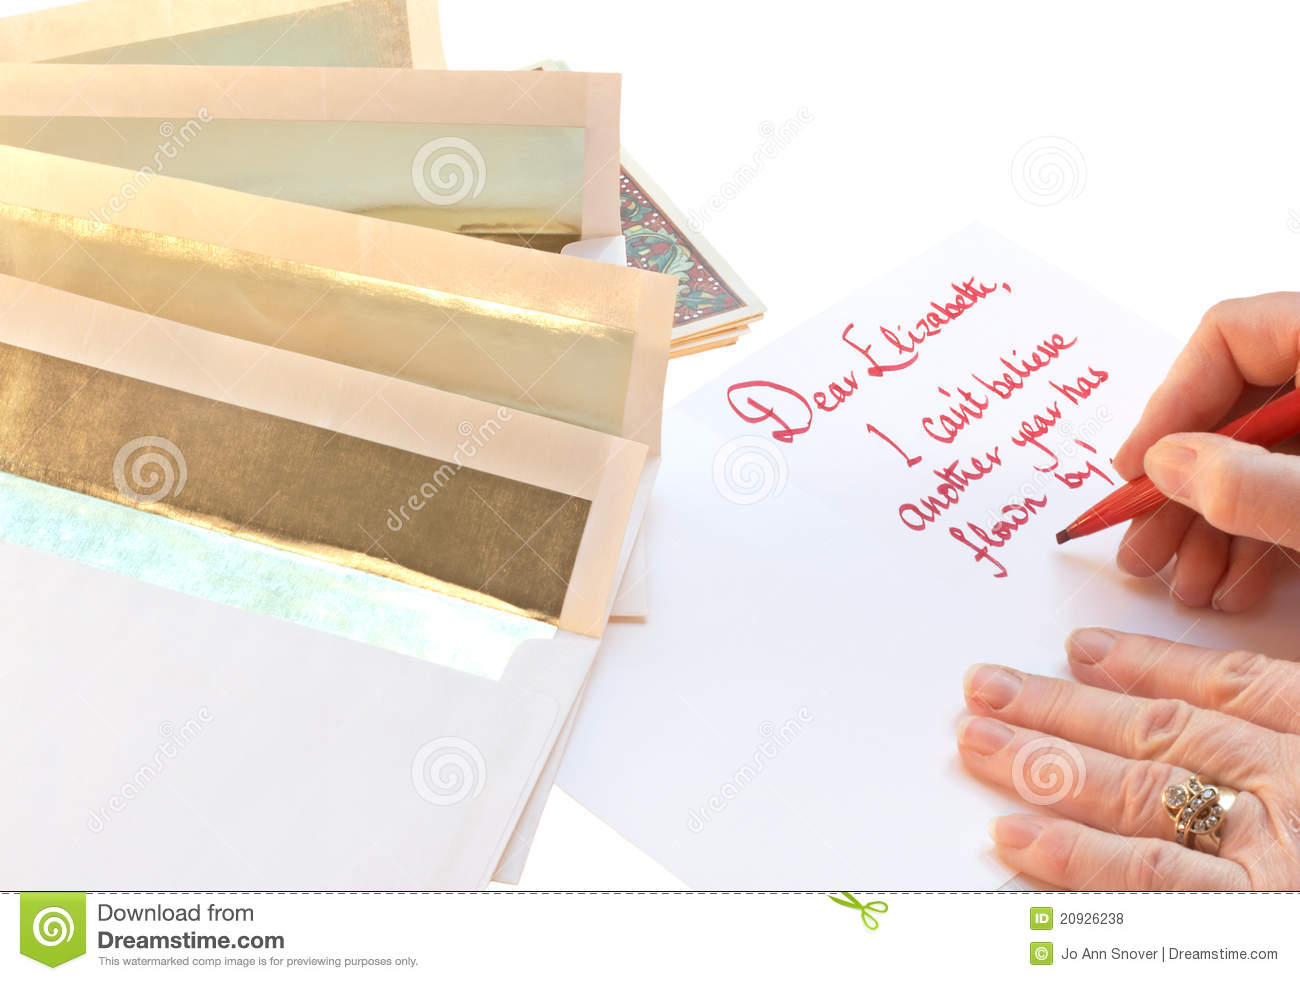 How to Get Paid for Writing Greeting Cards